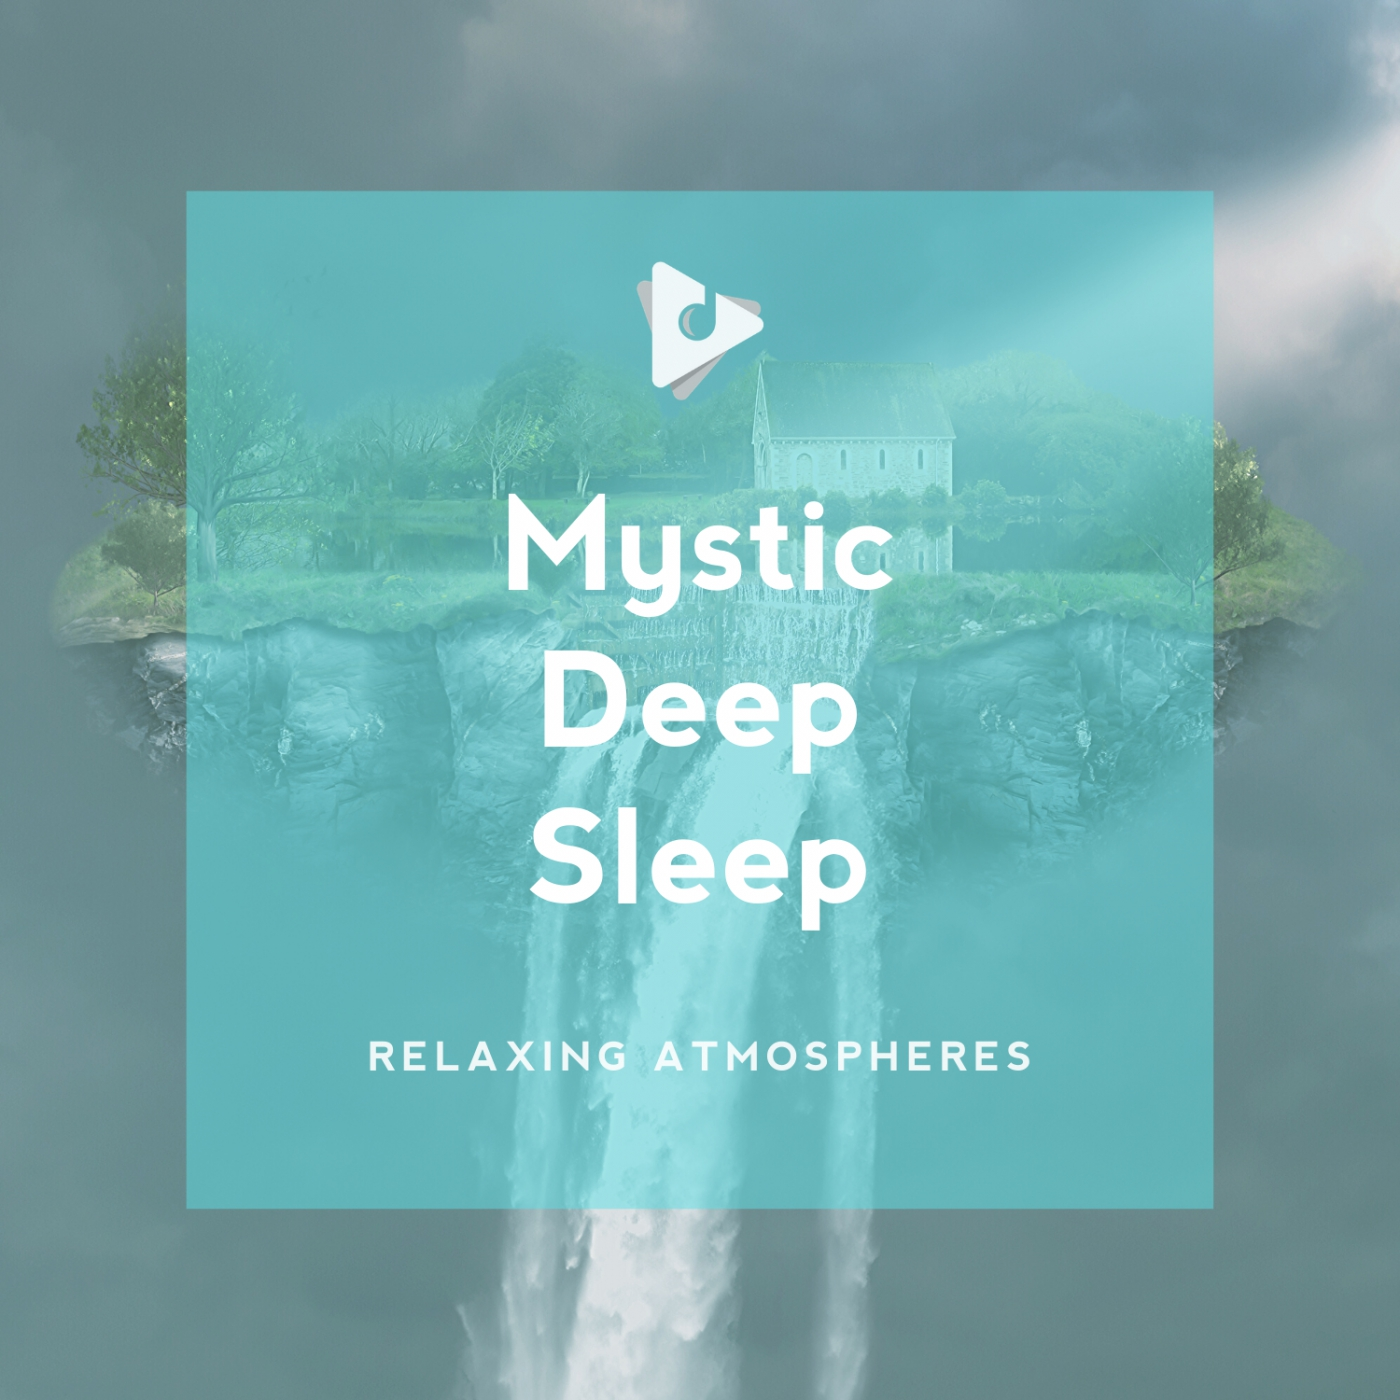 Mystic Deep Sleep